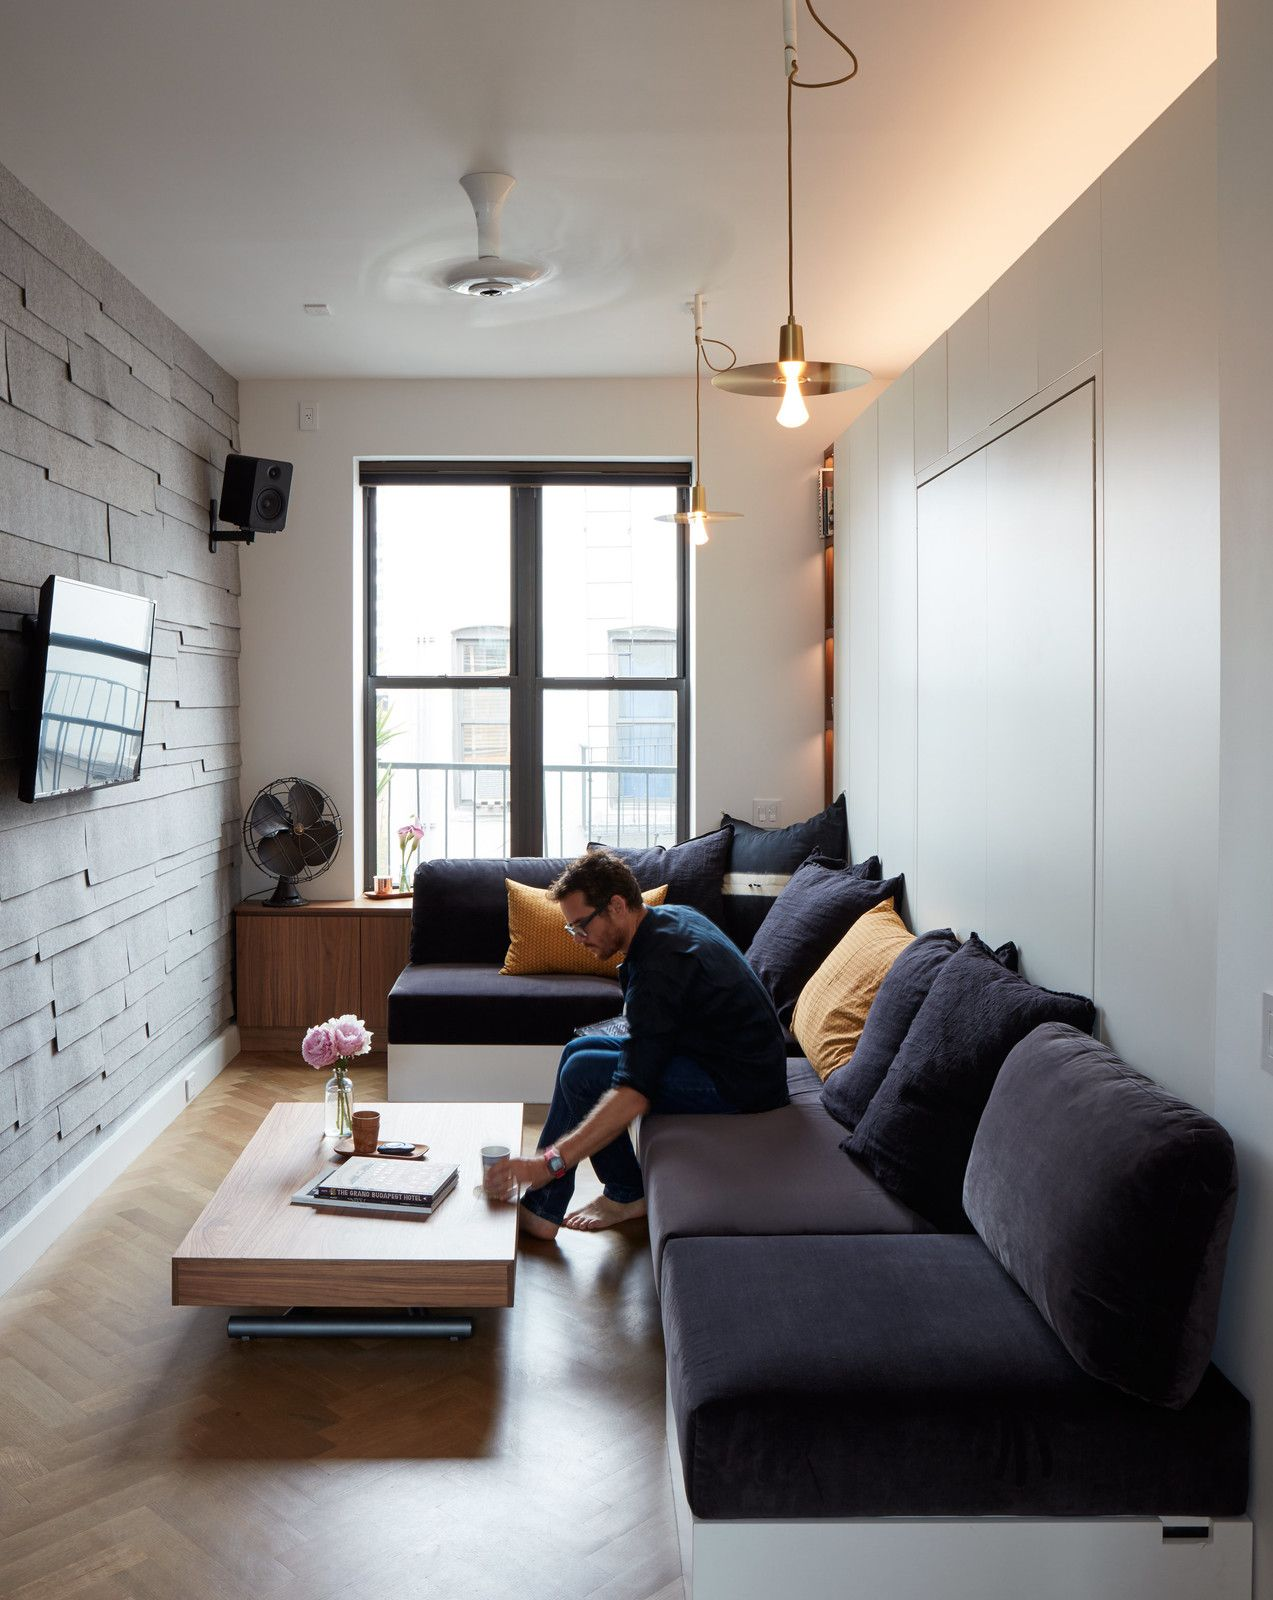 Decorate Small Living Room: Small Space Living In A SoHo Apartment